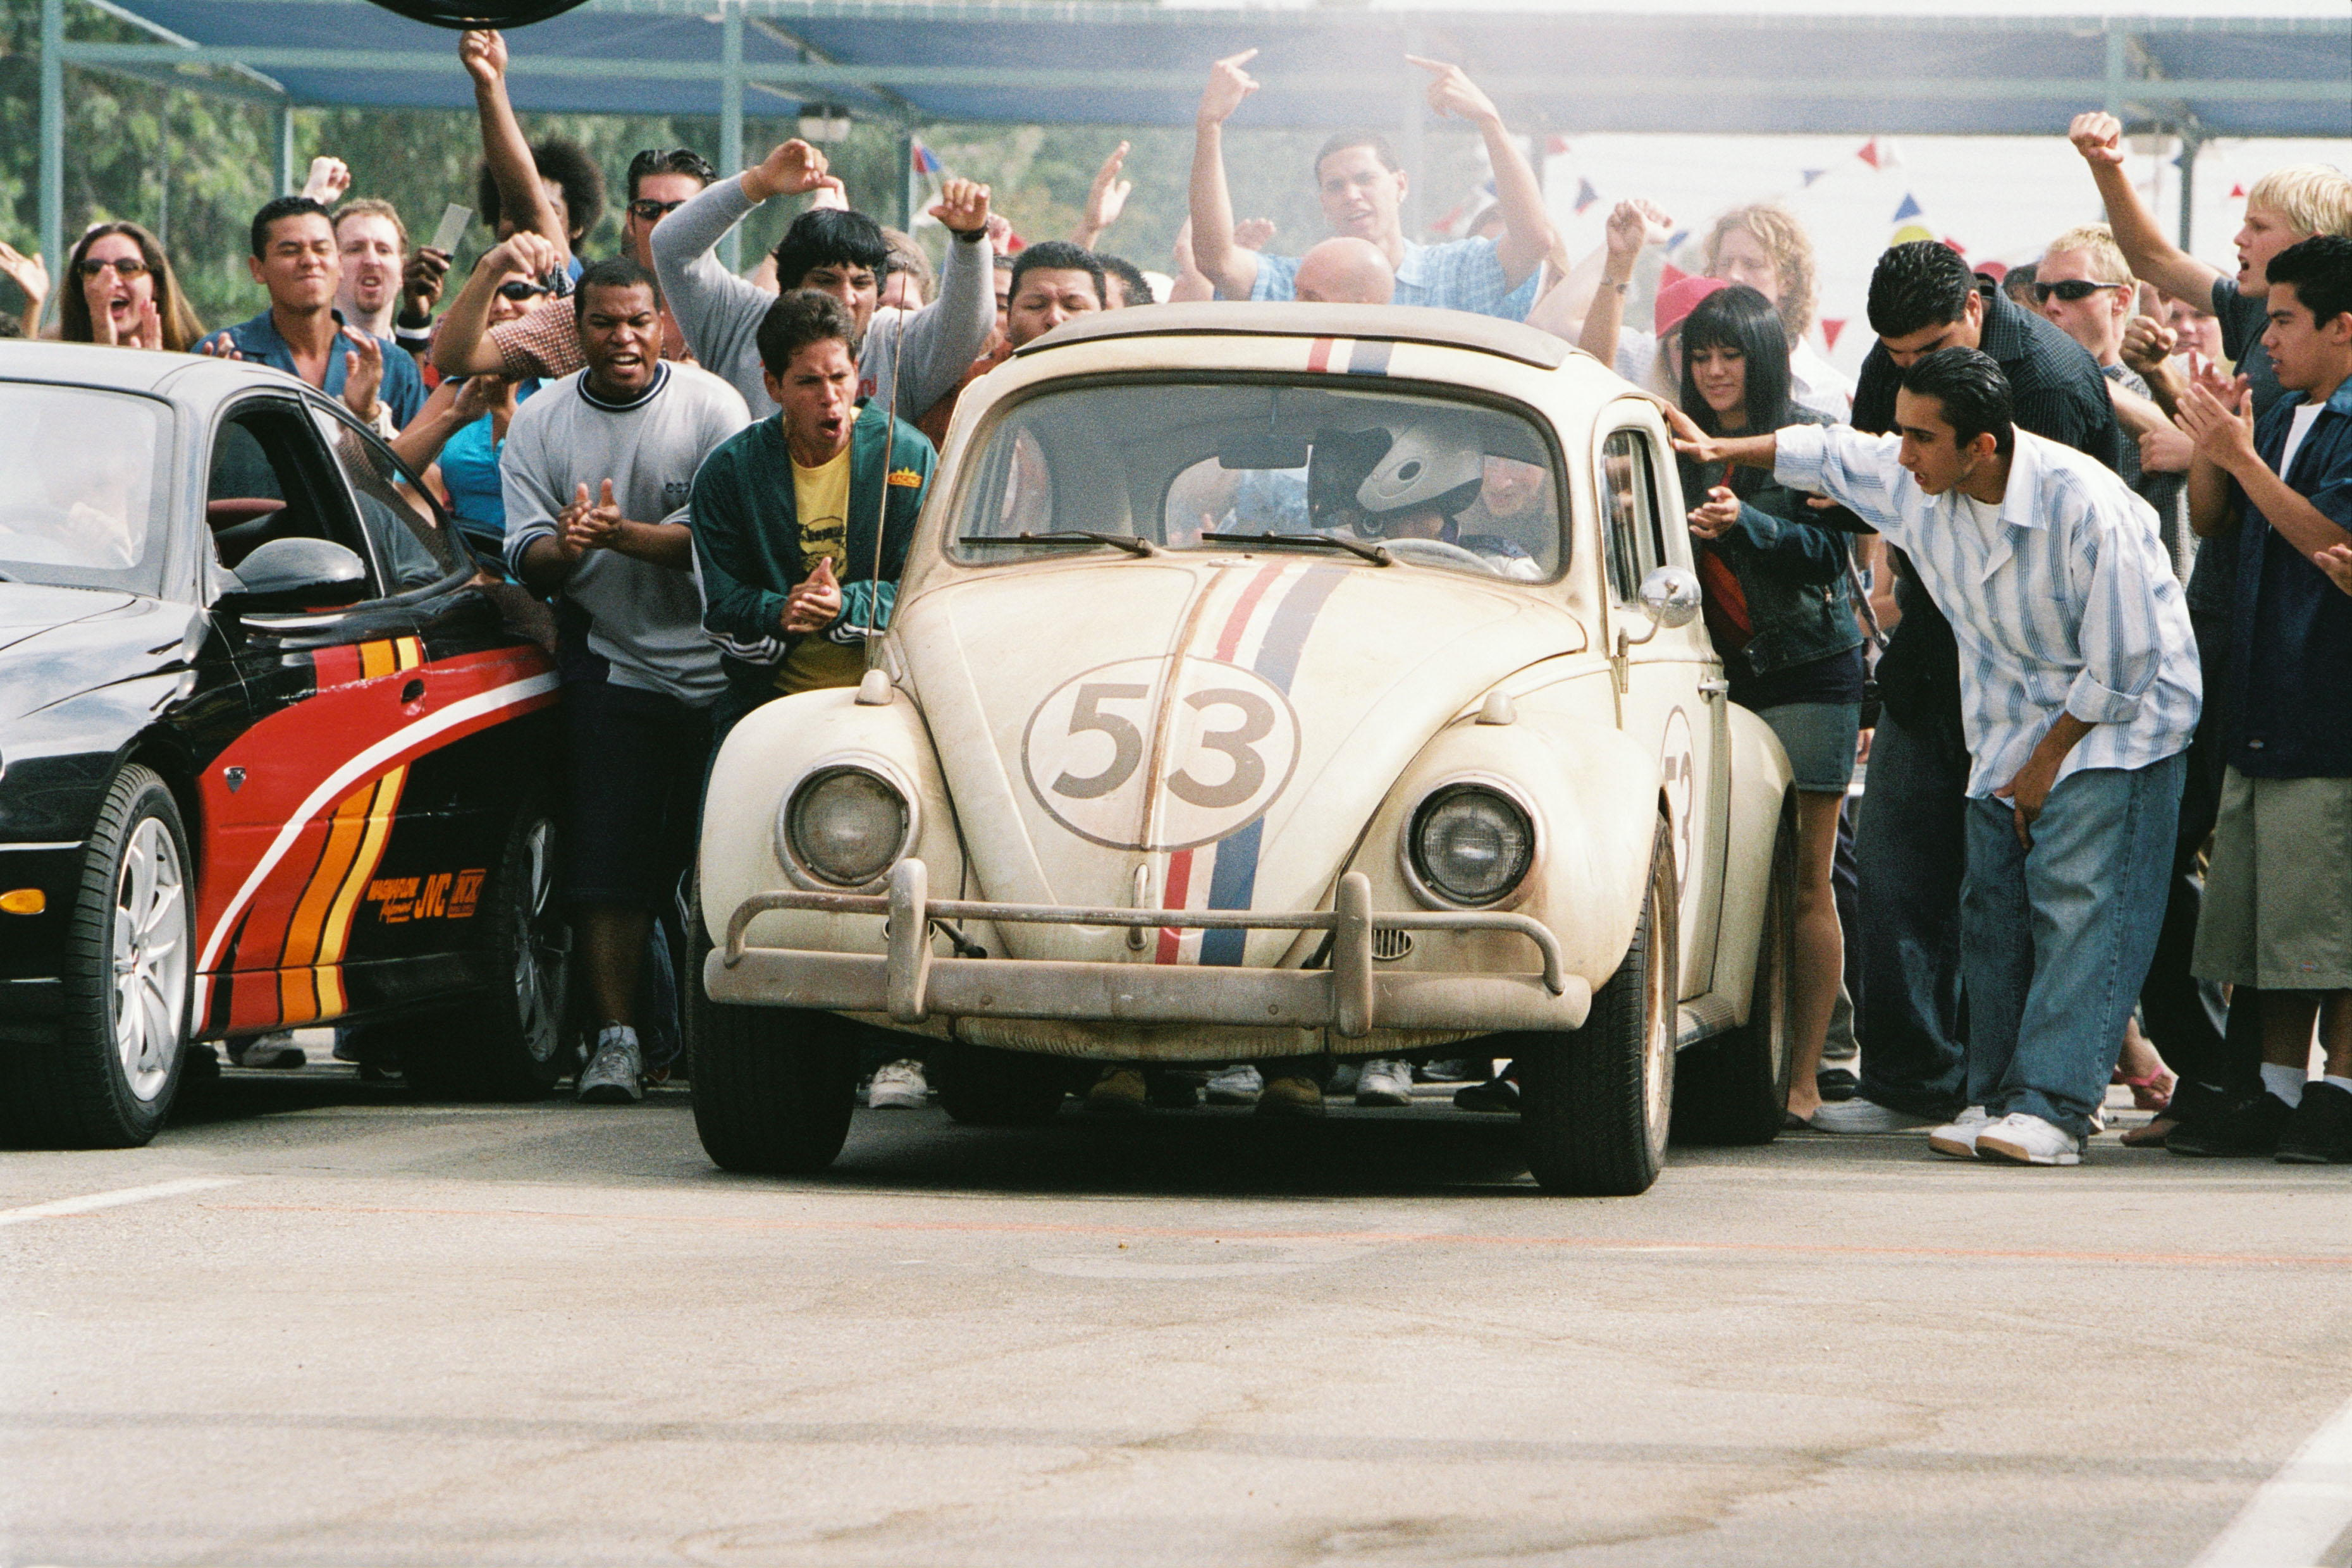 The Love Bug / Herbie Fully Loaded